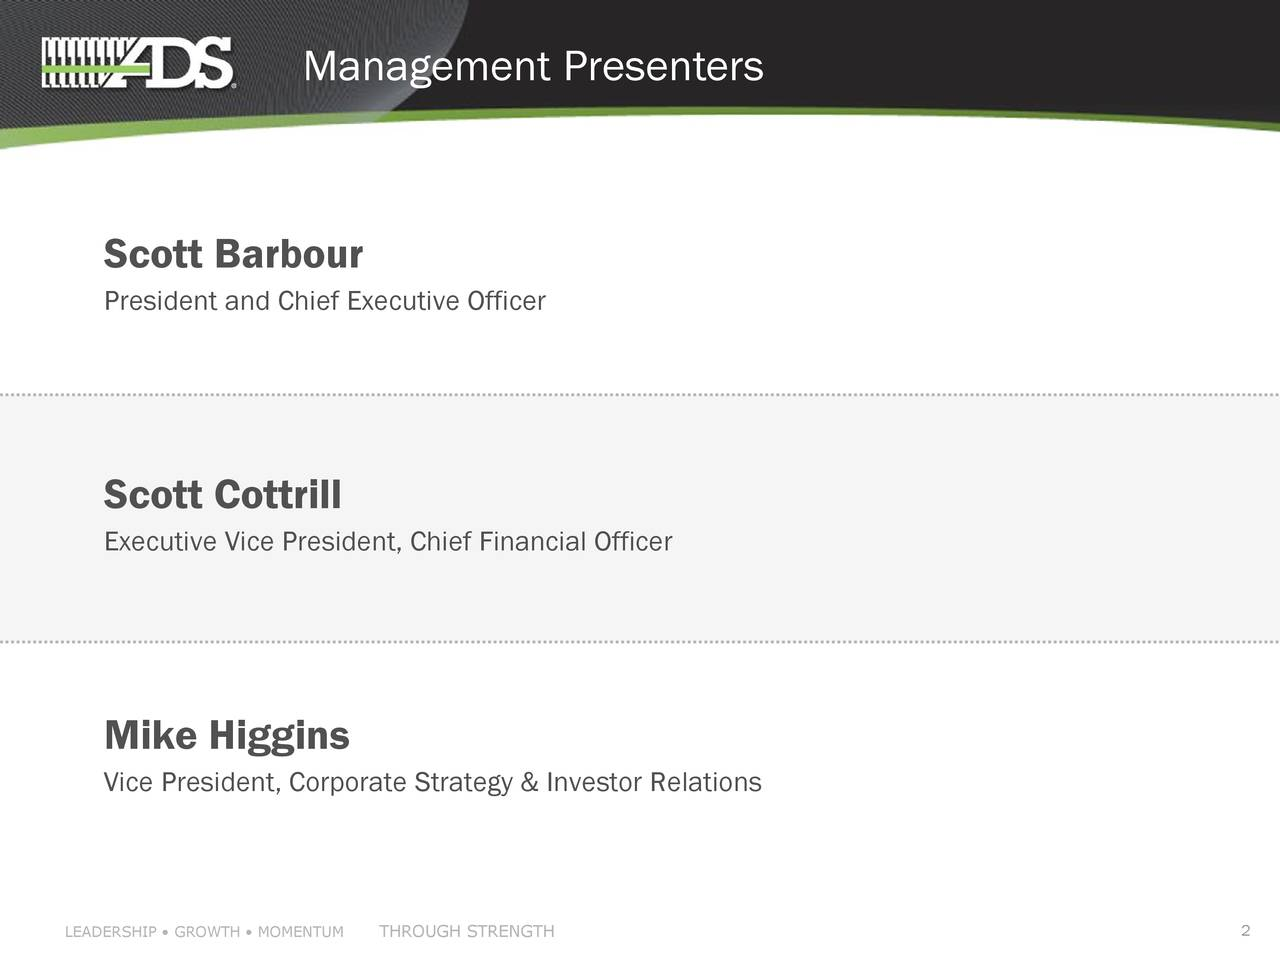 Scott Barbour President and Chief Executive Officer Scott Cottrill Executive Vice President, Chief Financial Officer Mike Higgins Vice President, Corporate Strategy & Investor Relations LEADERSHIP • GROWTH • MTHROUGH STRENGTH 2